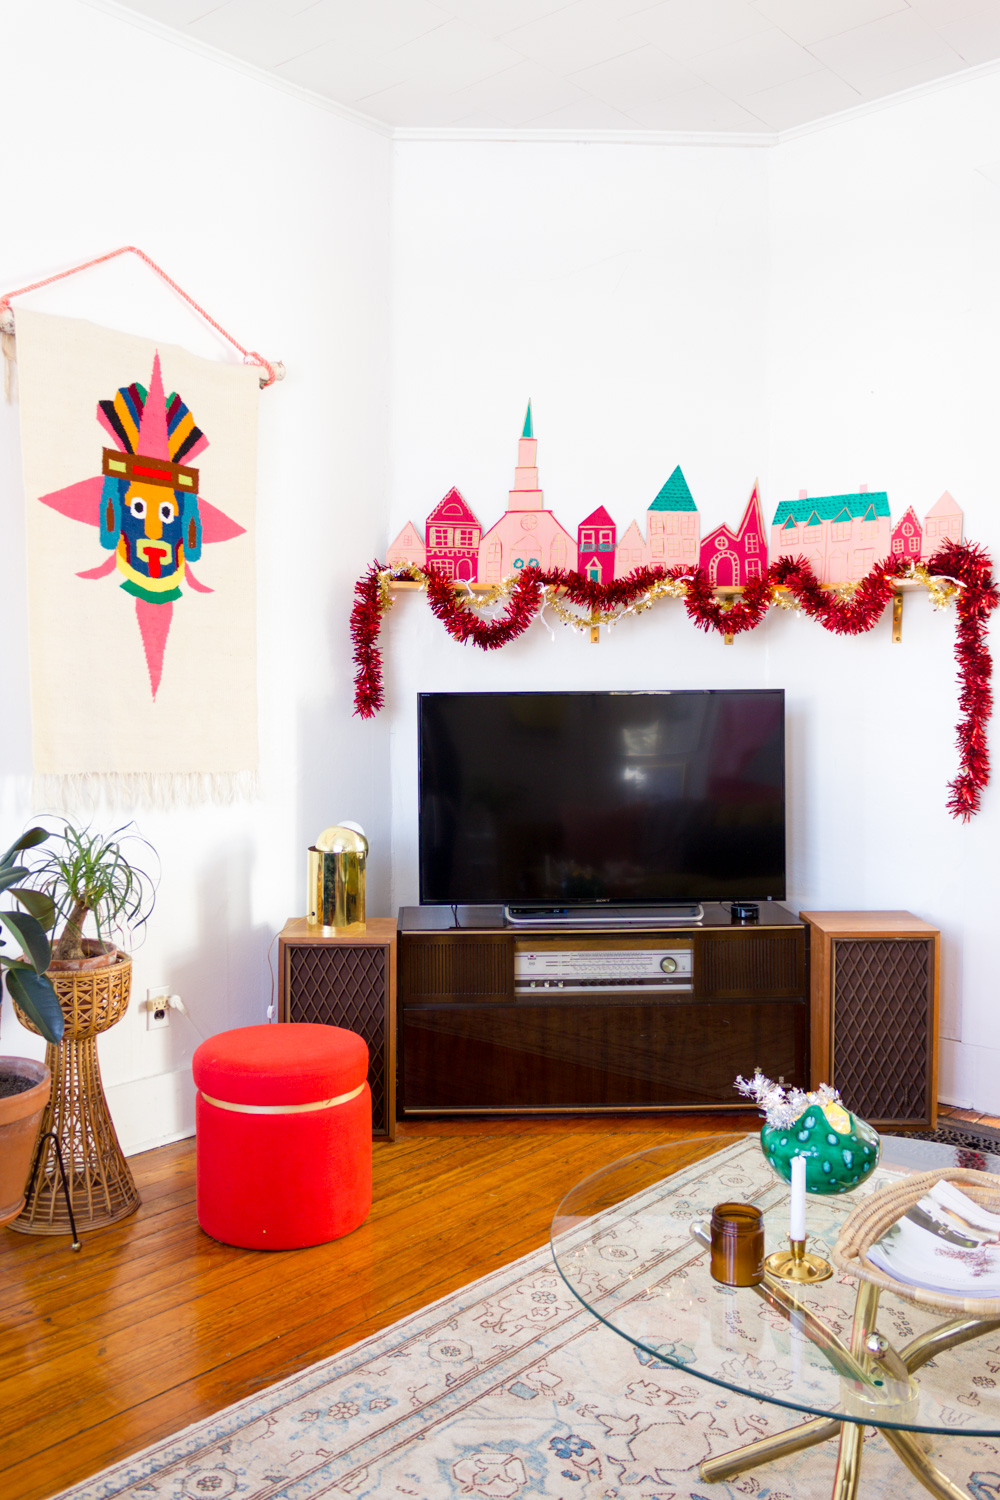 living room with DIY pink and red painted Christmas village